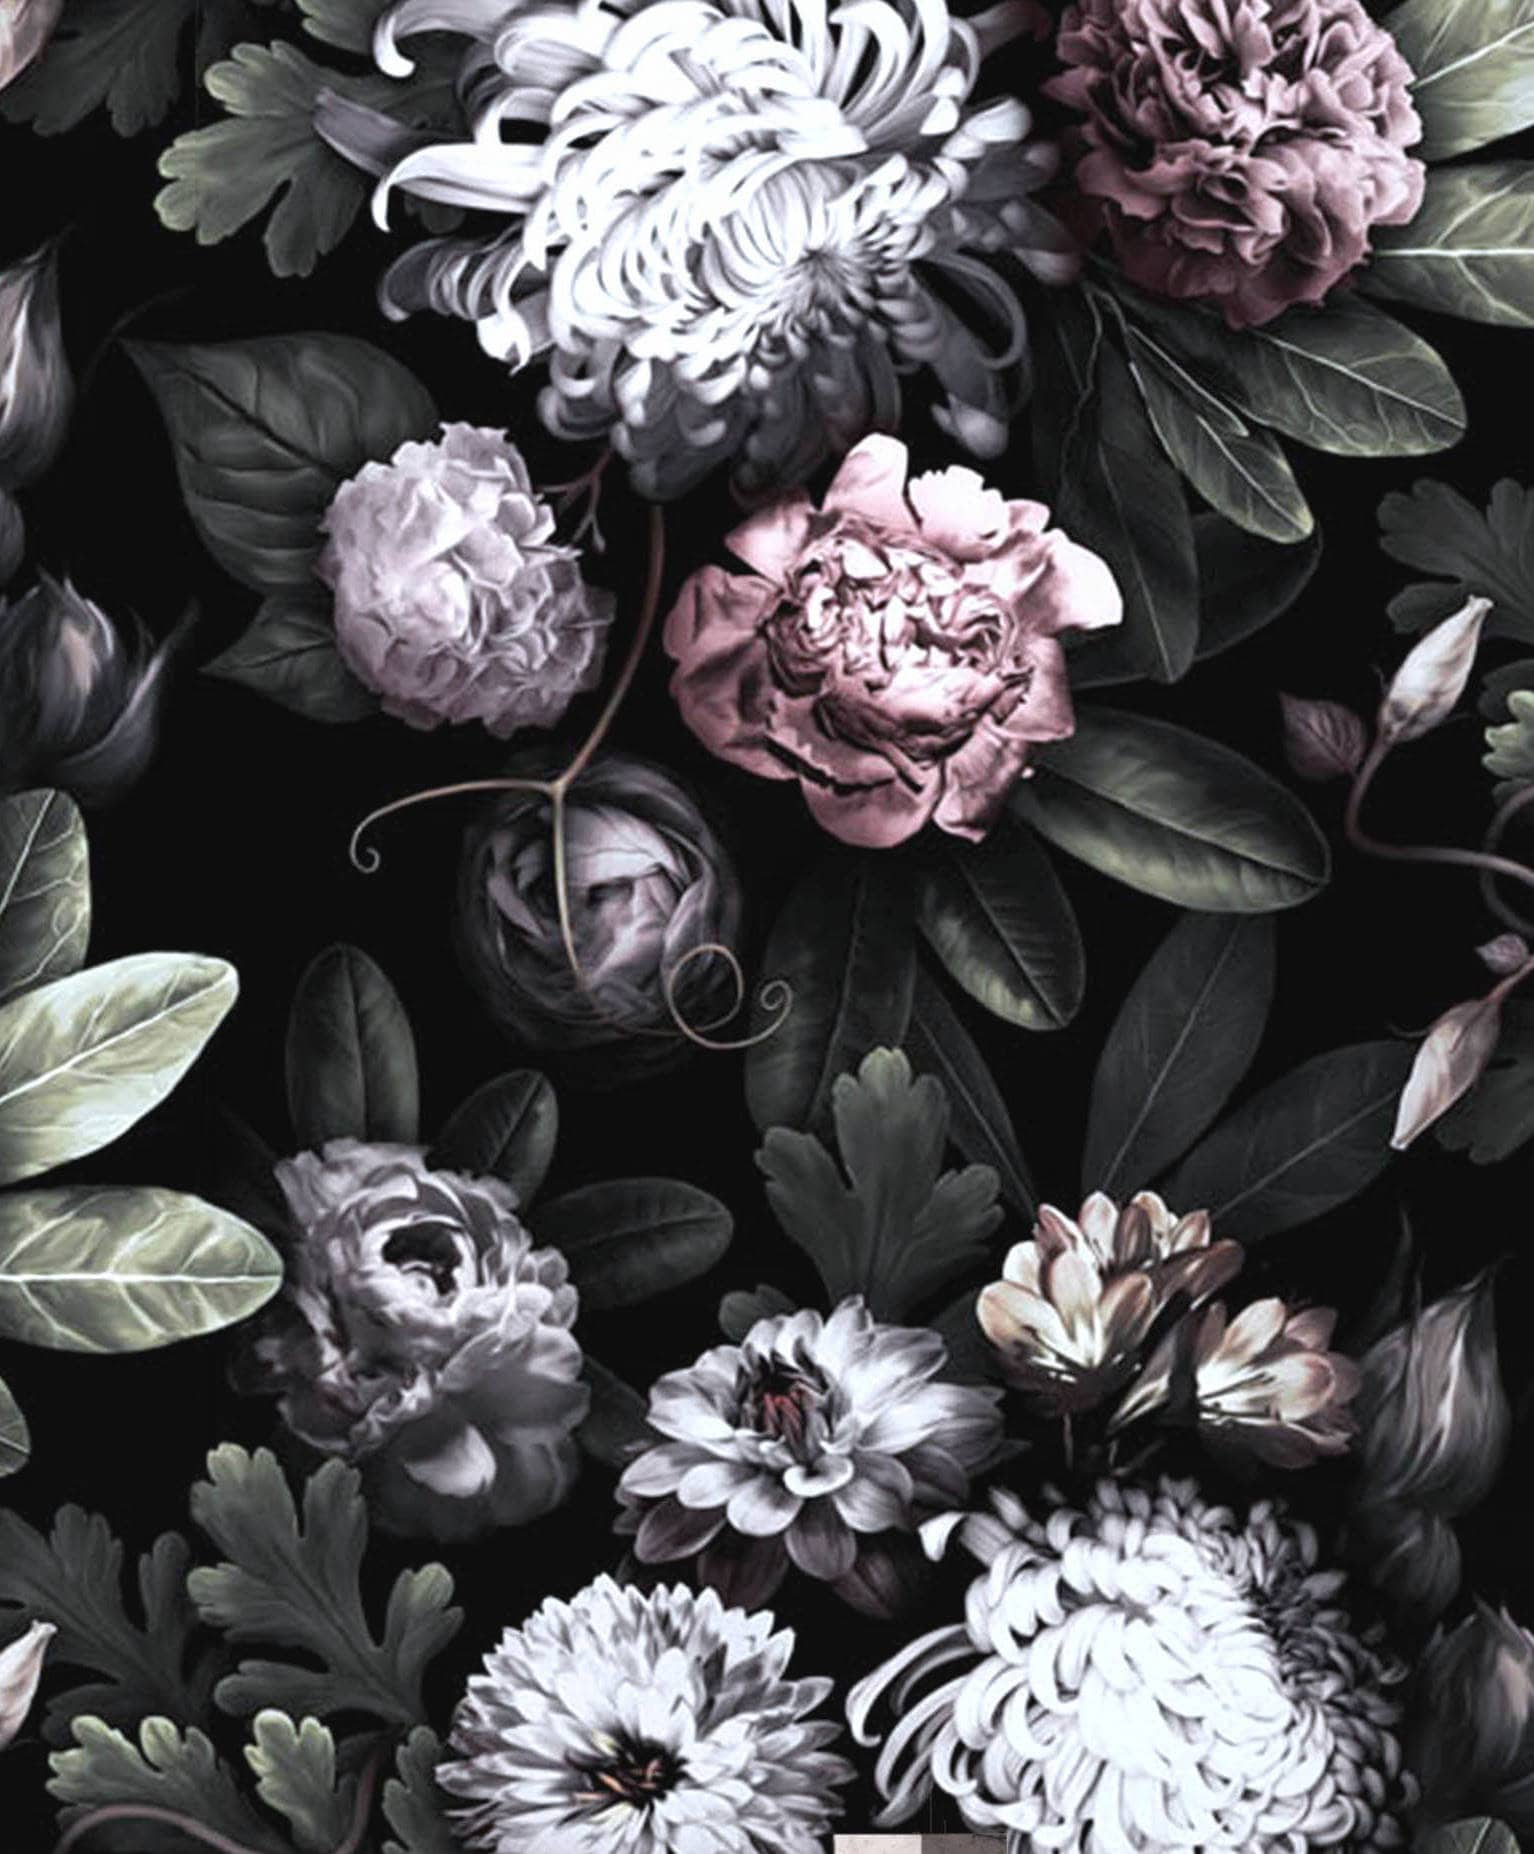 Computer Wallpaper Nz: Dark Floral Wallpaper, Floral Wallpaper, Dark Flowers